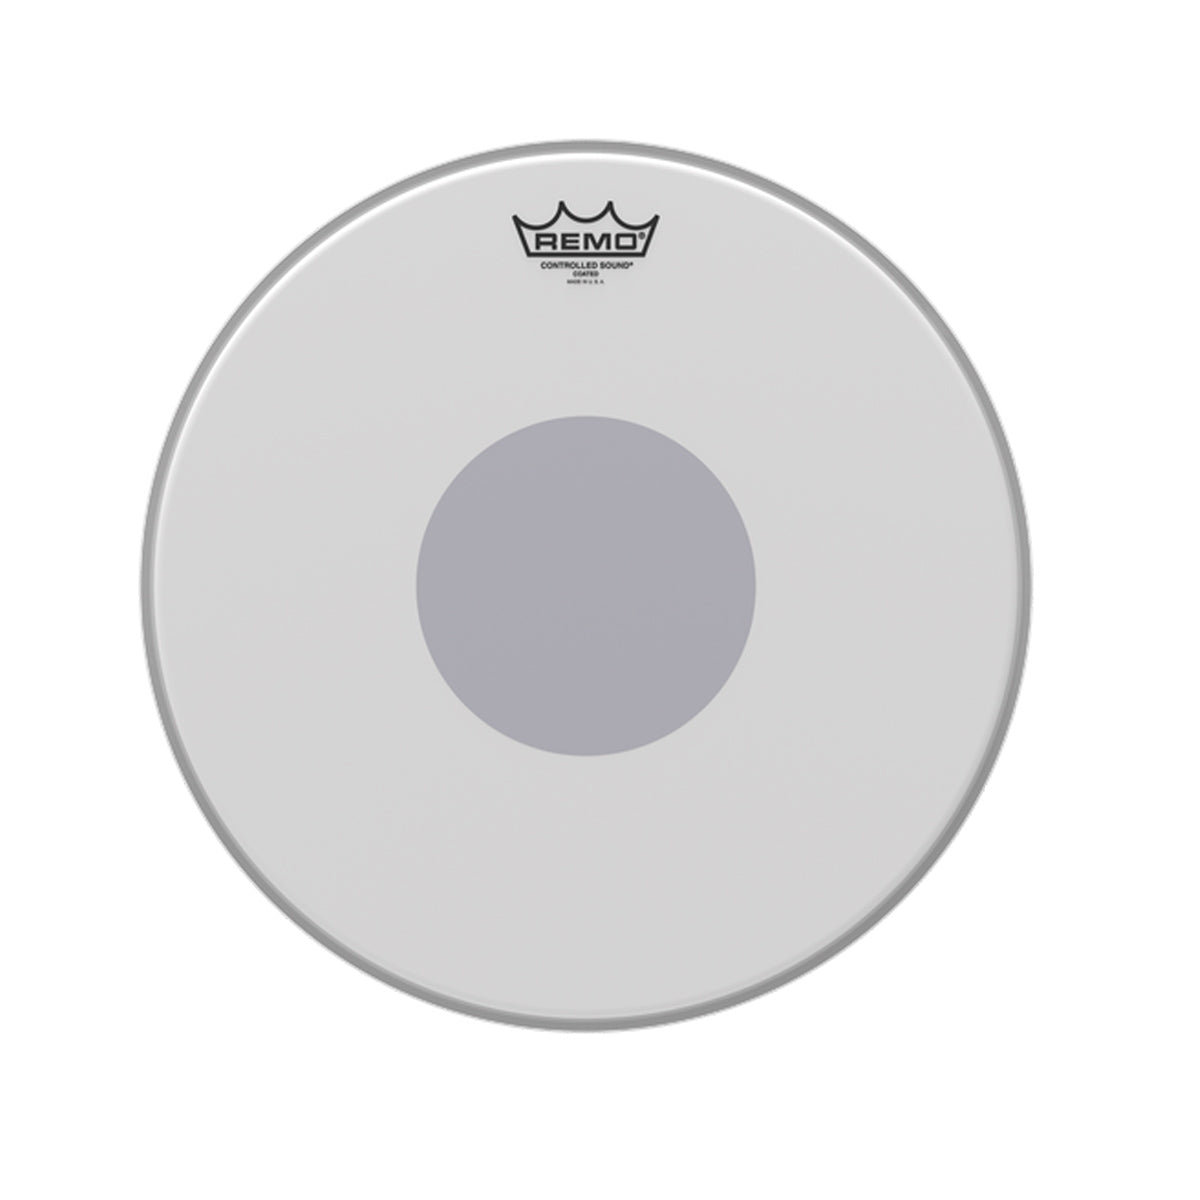 Remo CS-0115-10 Controlled Sound Drum Head Skin 15 inch Coated 15'' w/ Dot